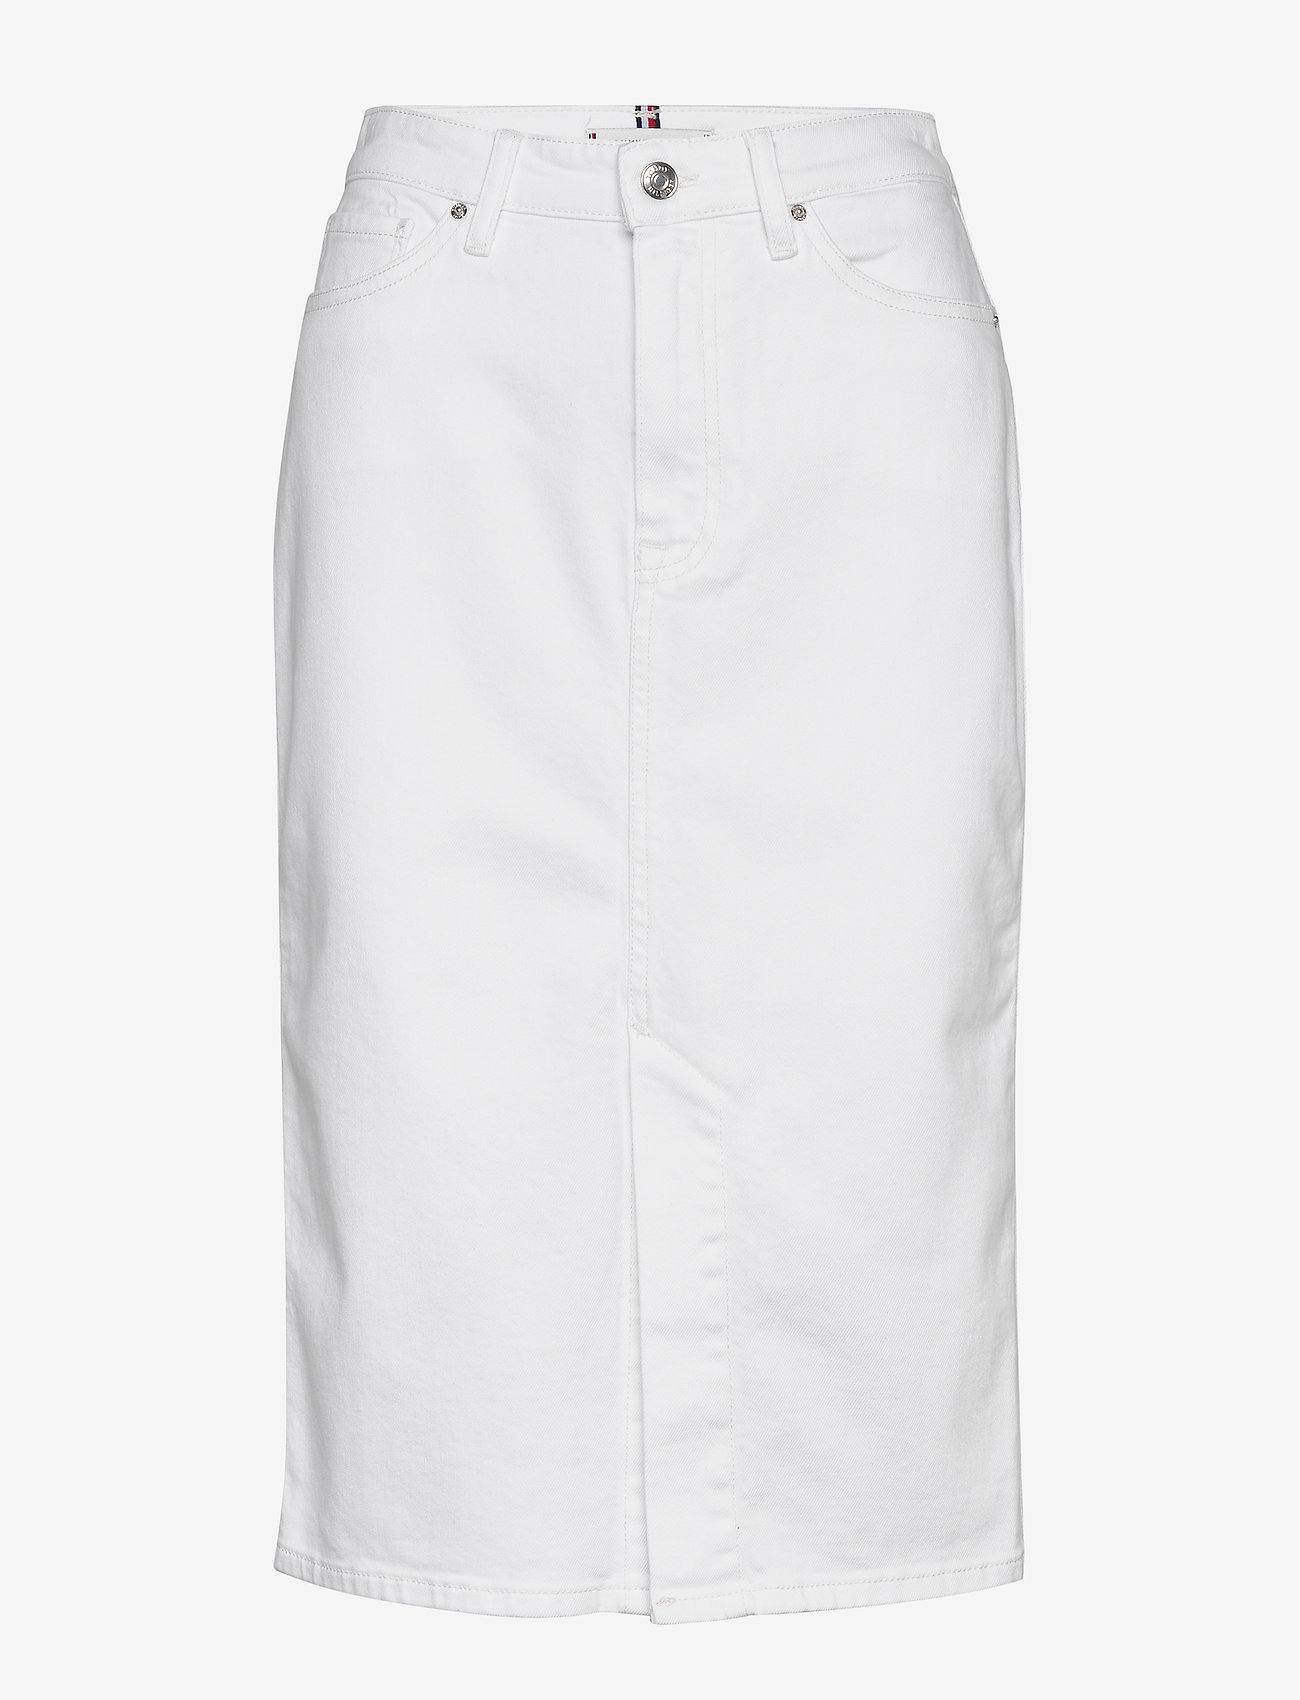 Tommy Hilfiger - PENCIL SKIRT HW WHITE - denim skirts - white - 0